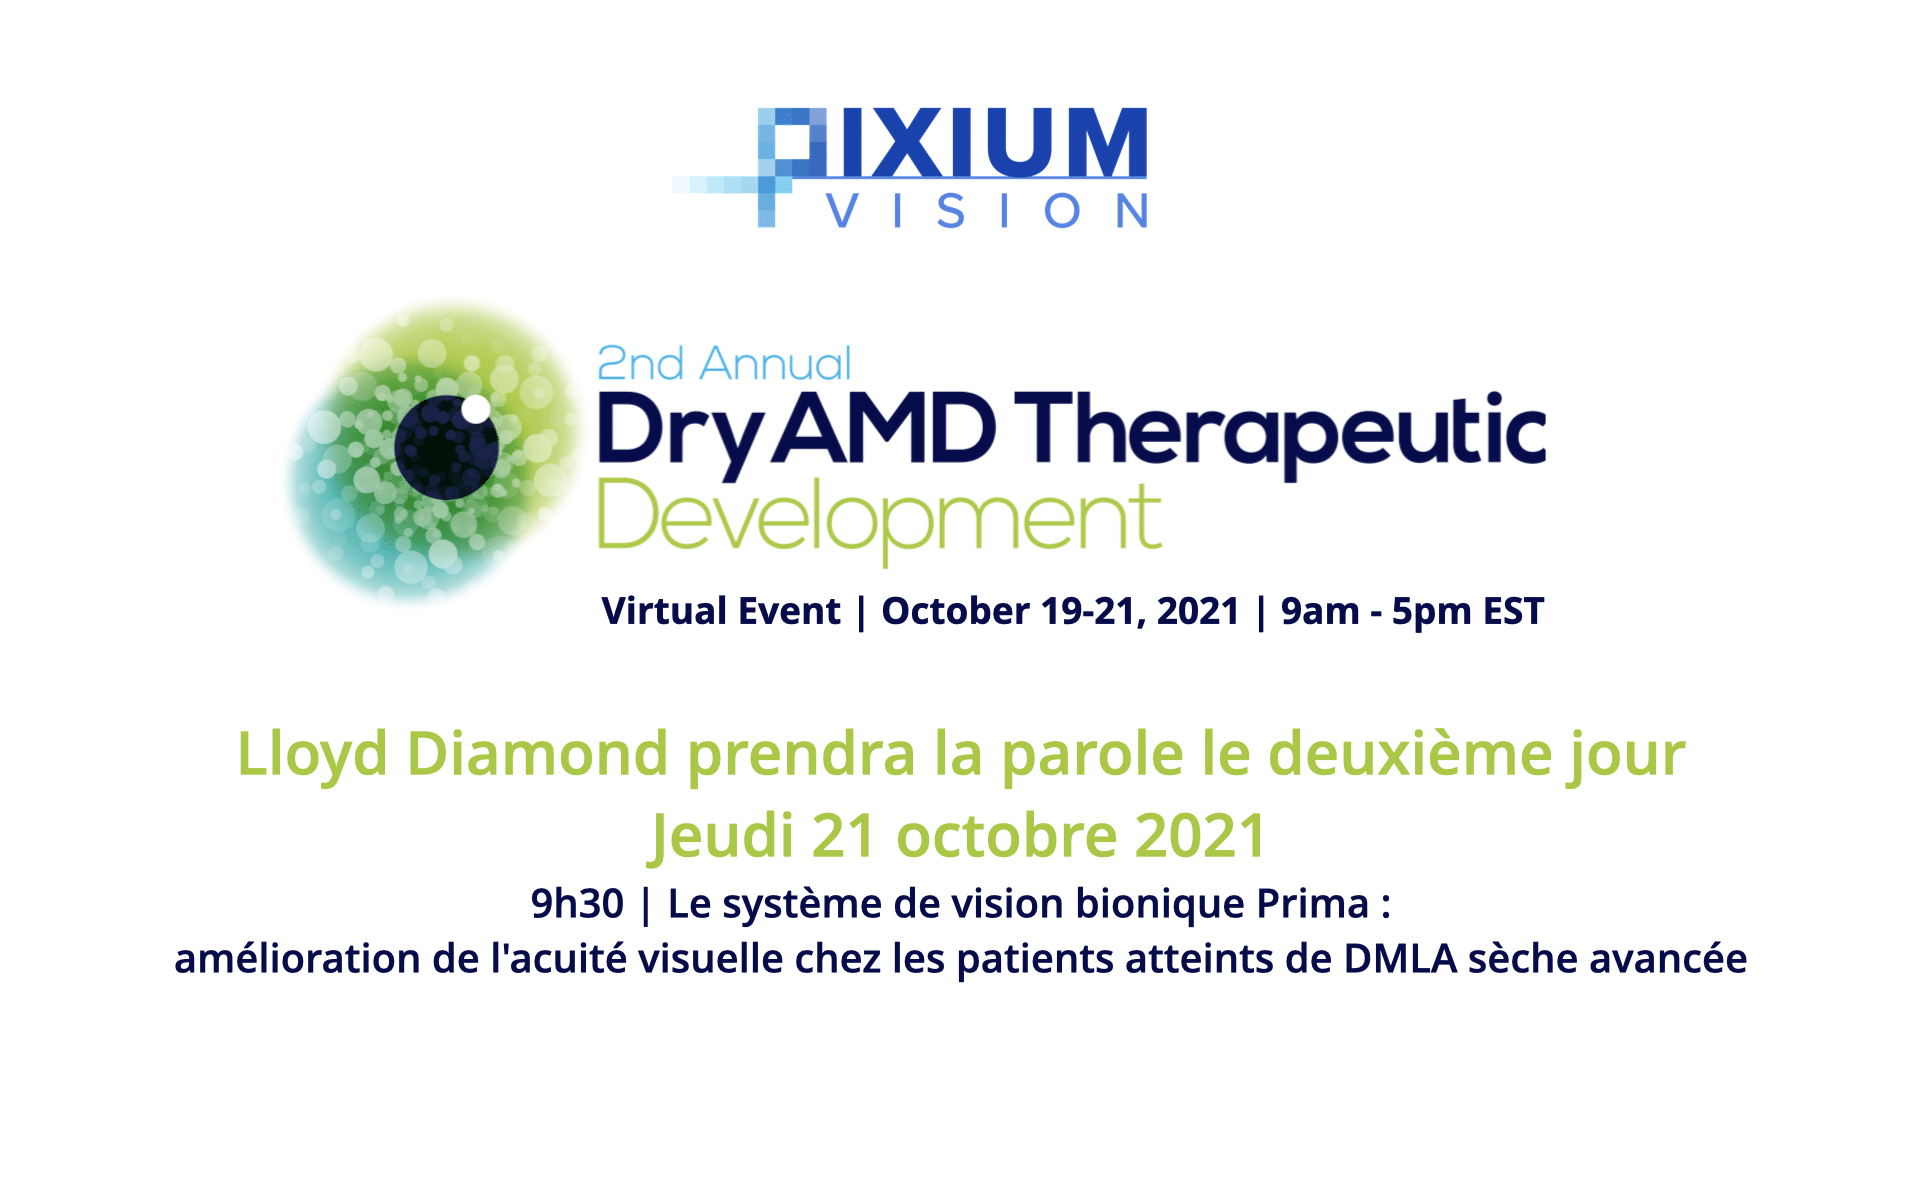 2nd Sommet Annuel DryAMD Therapeutic Development octobre 2021